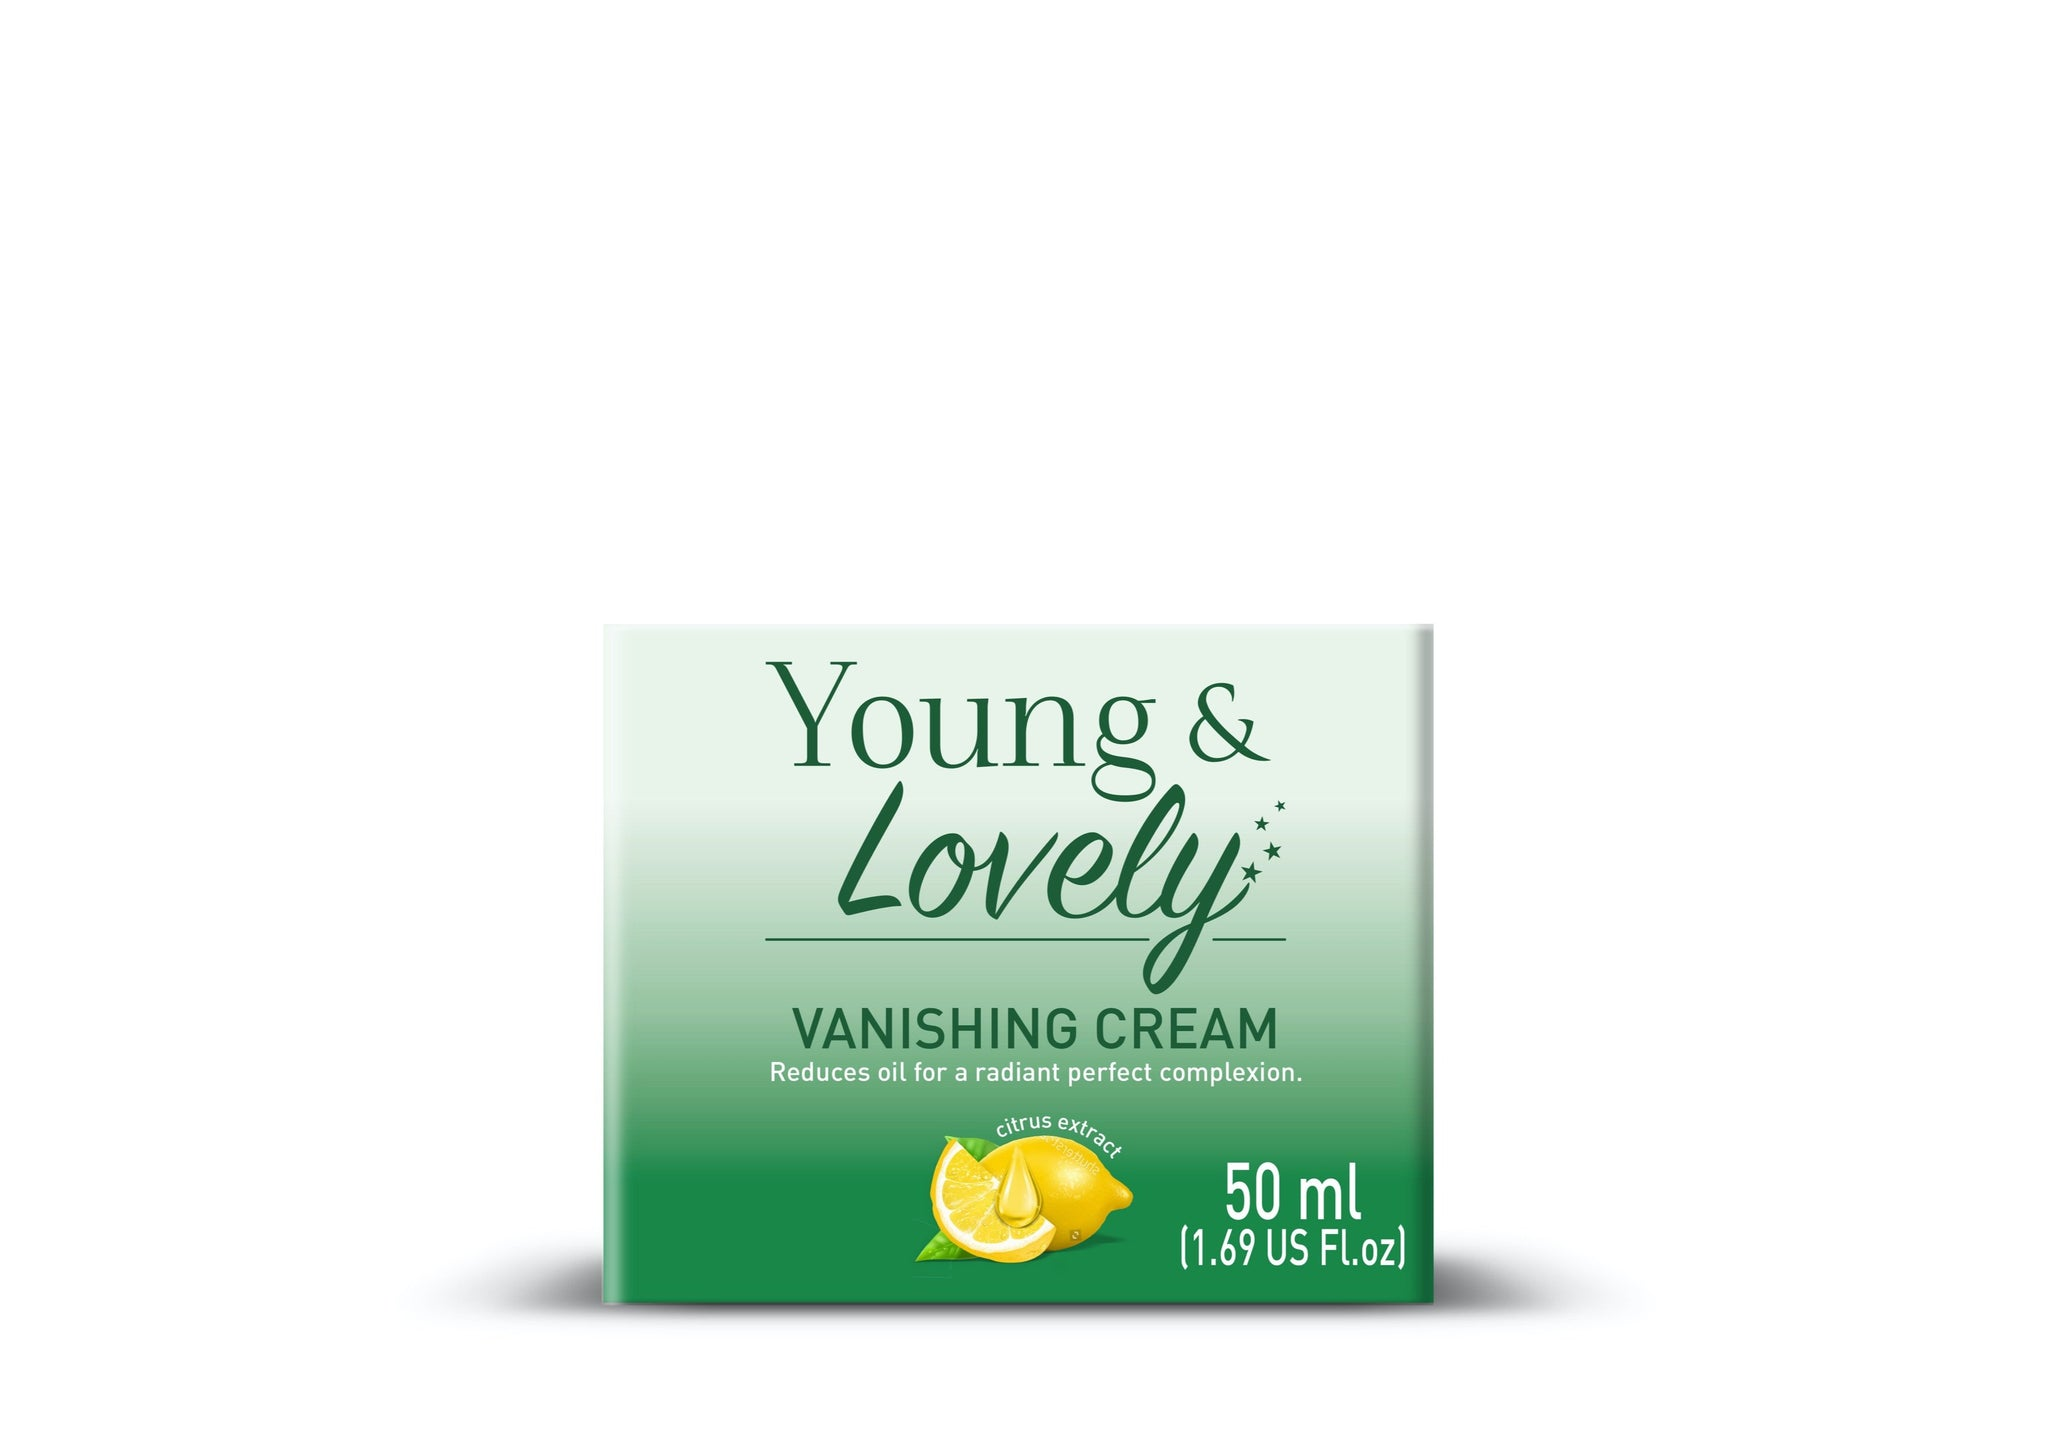 Young & Lovely Vanishing Cream - 50ml